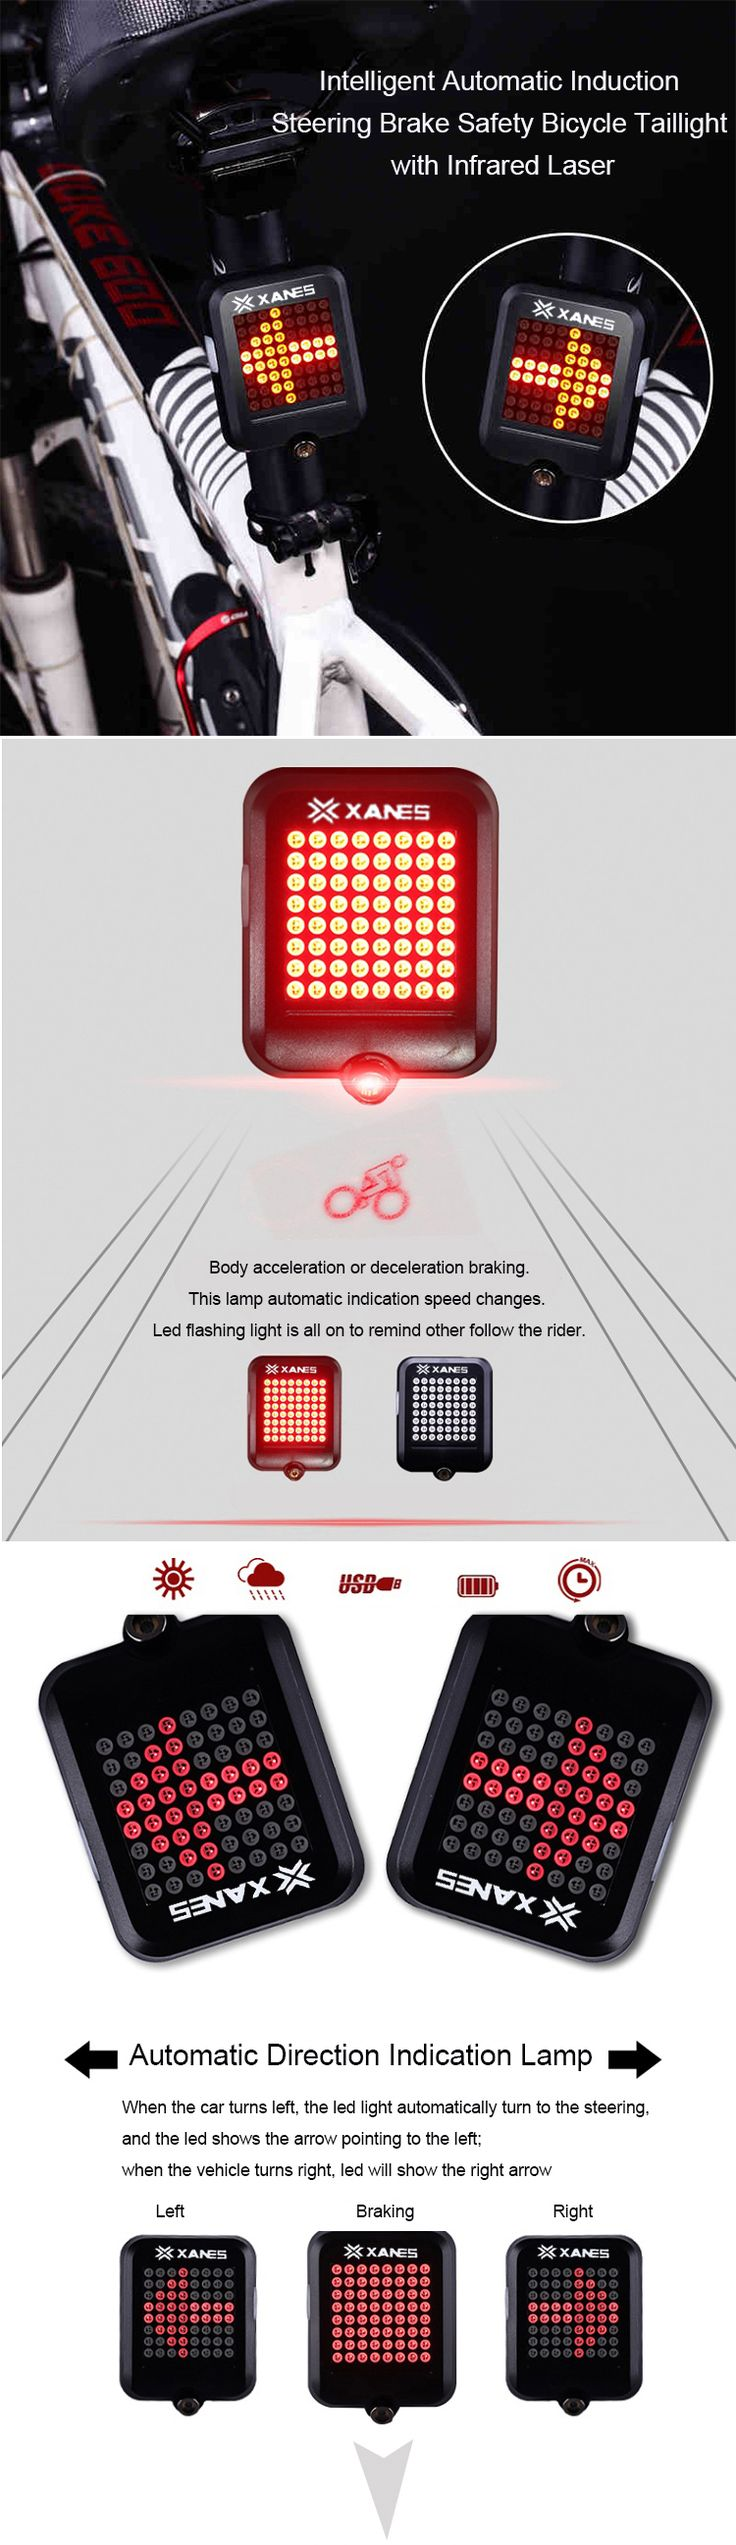 XANES STL-01 64 LED 80LM Intelligent Automatic Induction Steel Ring Brake Safety Bicycle Taillight with Infrared Laser Warning Waterproof Night Light USB Charging